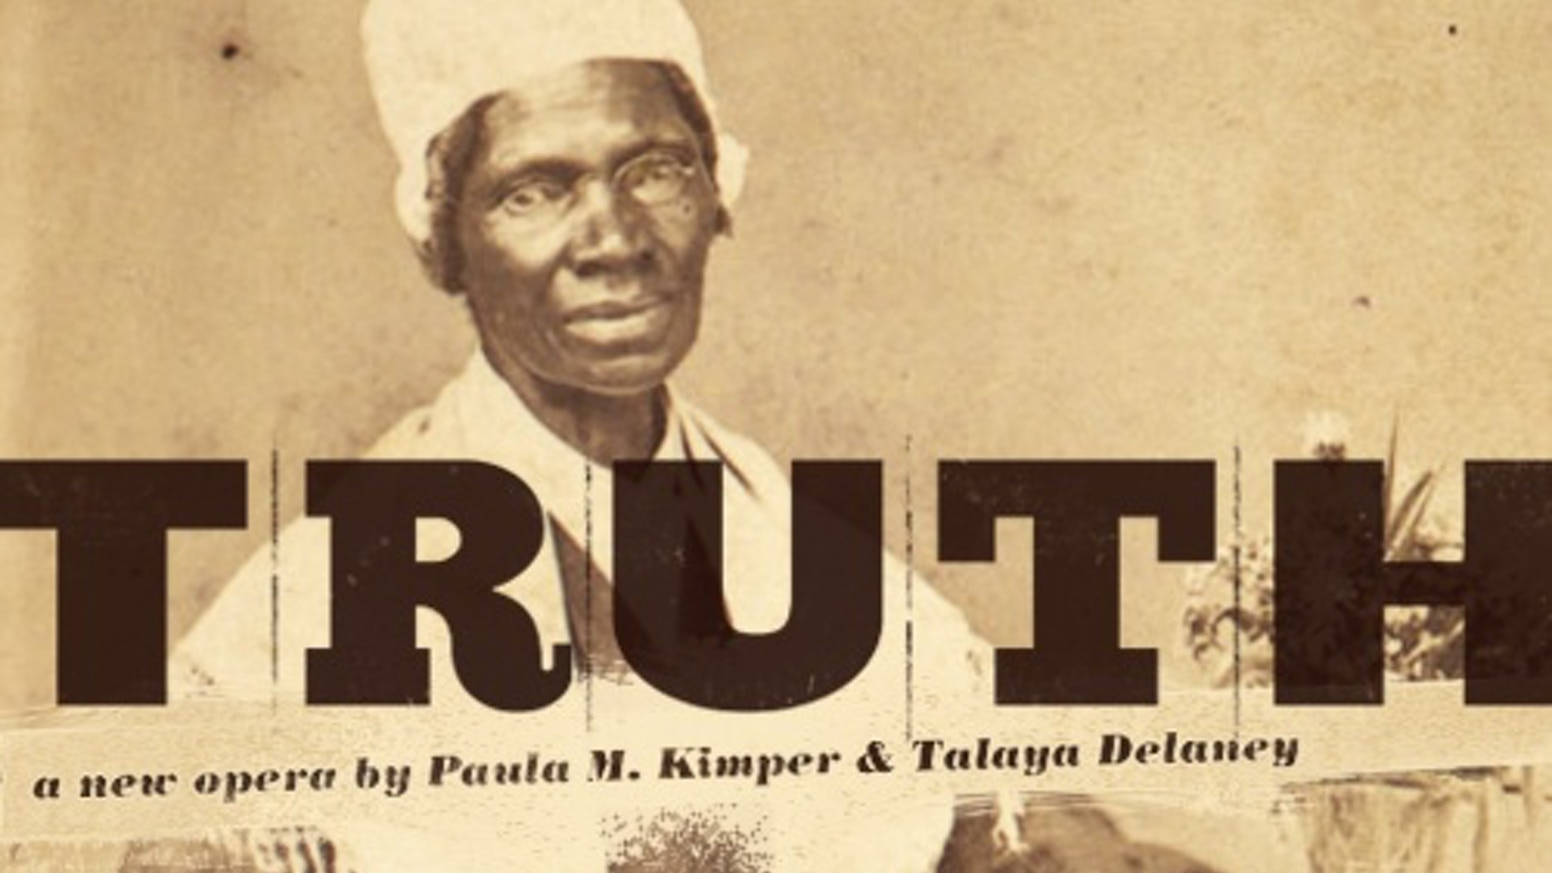 Invest In New Folk Opera About Sojourner Truth